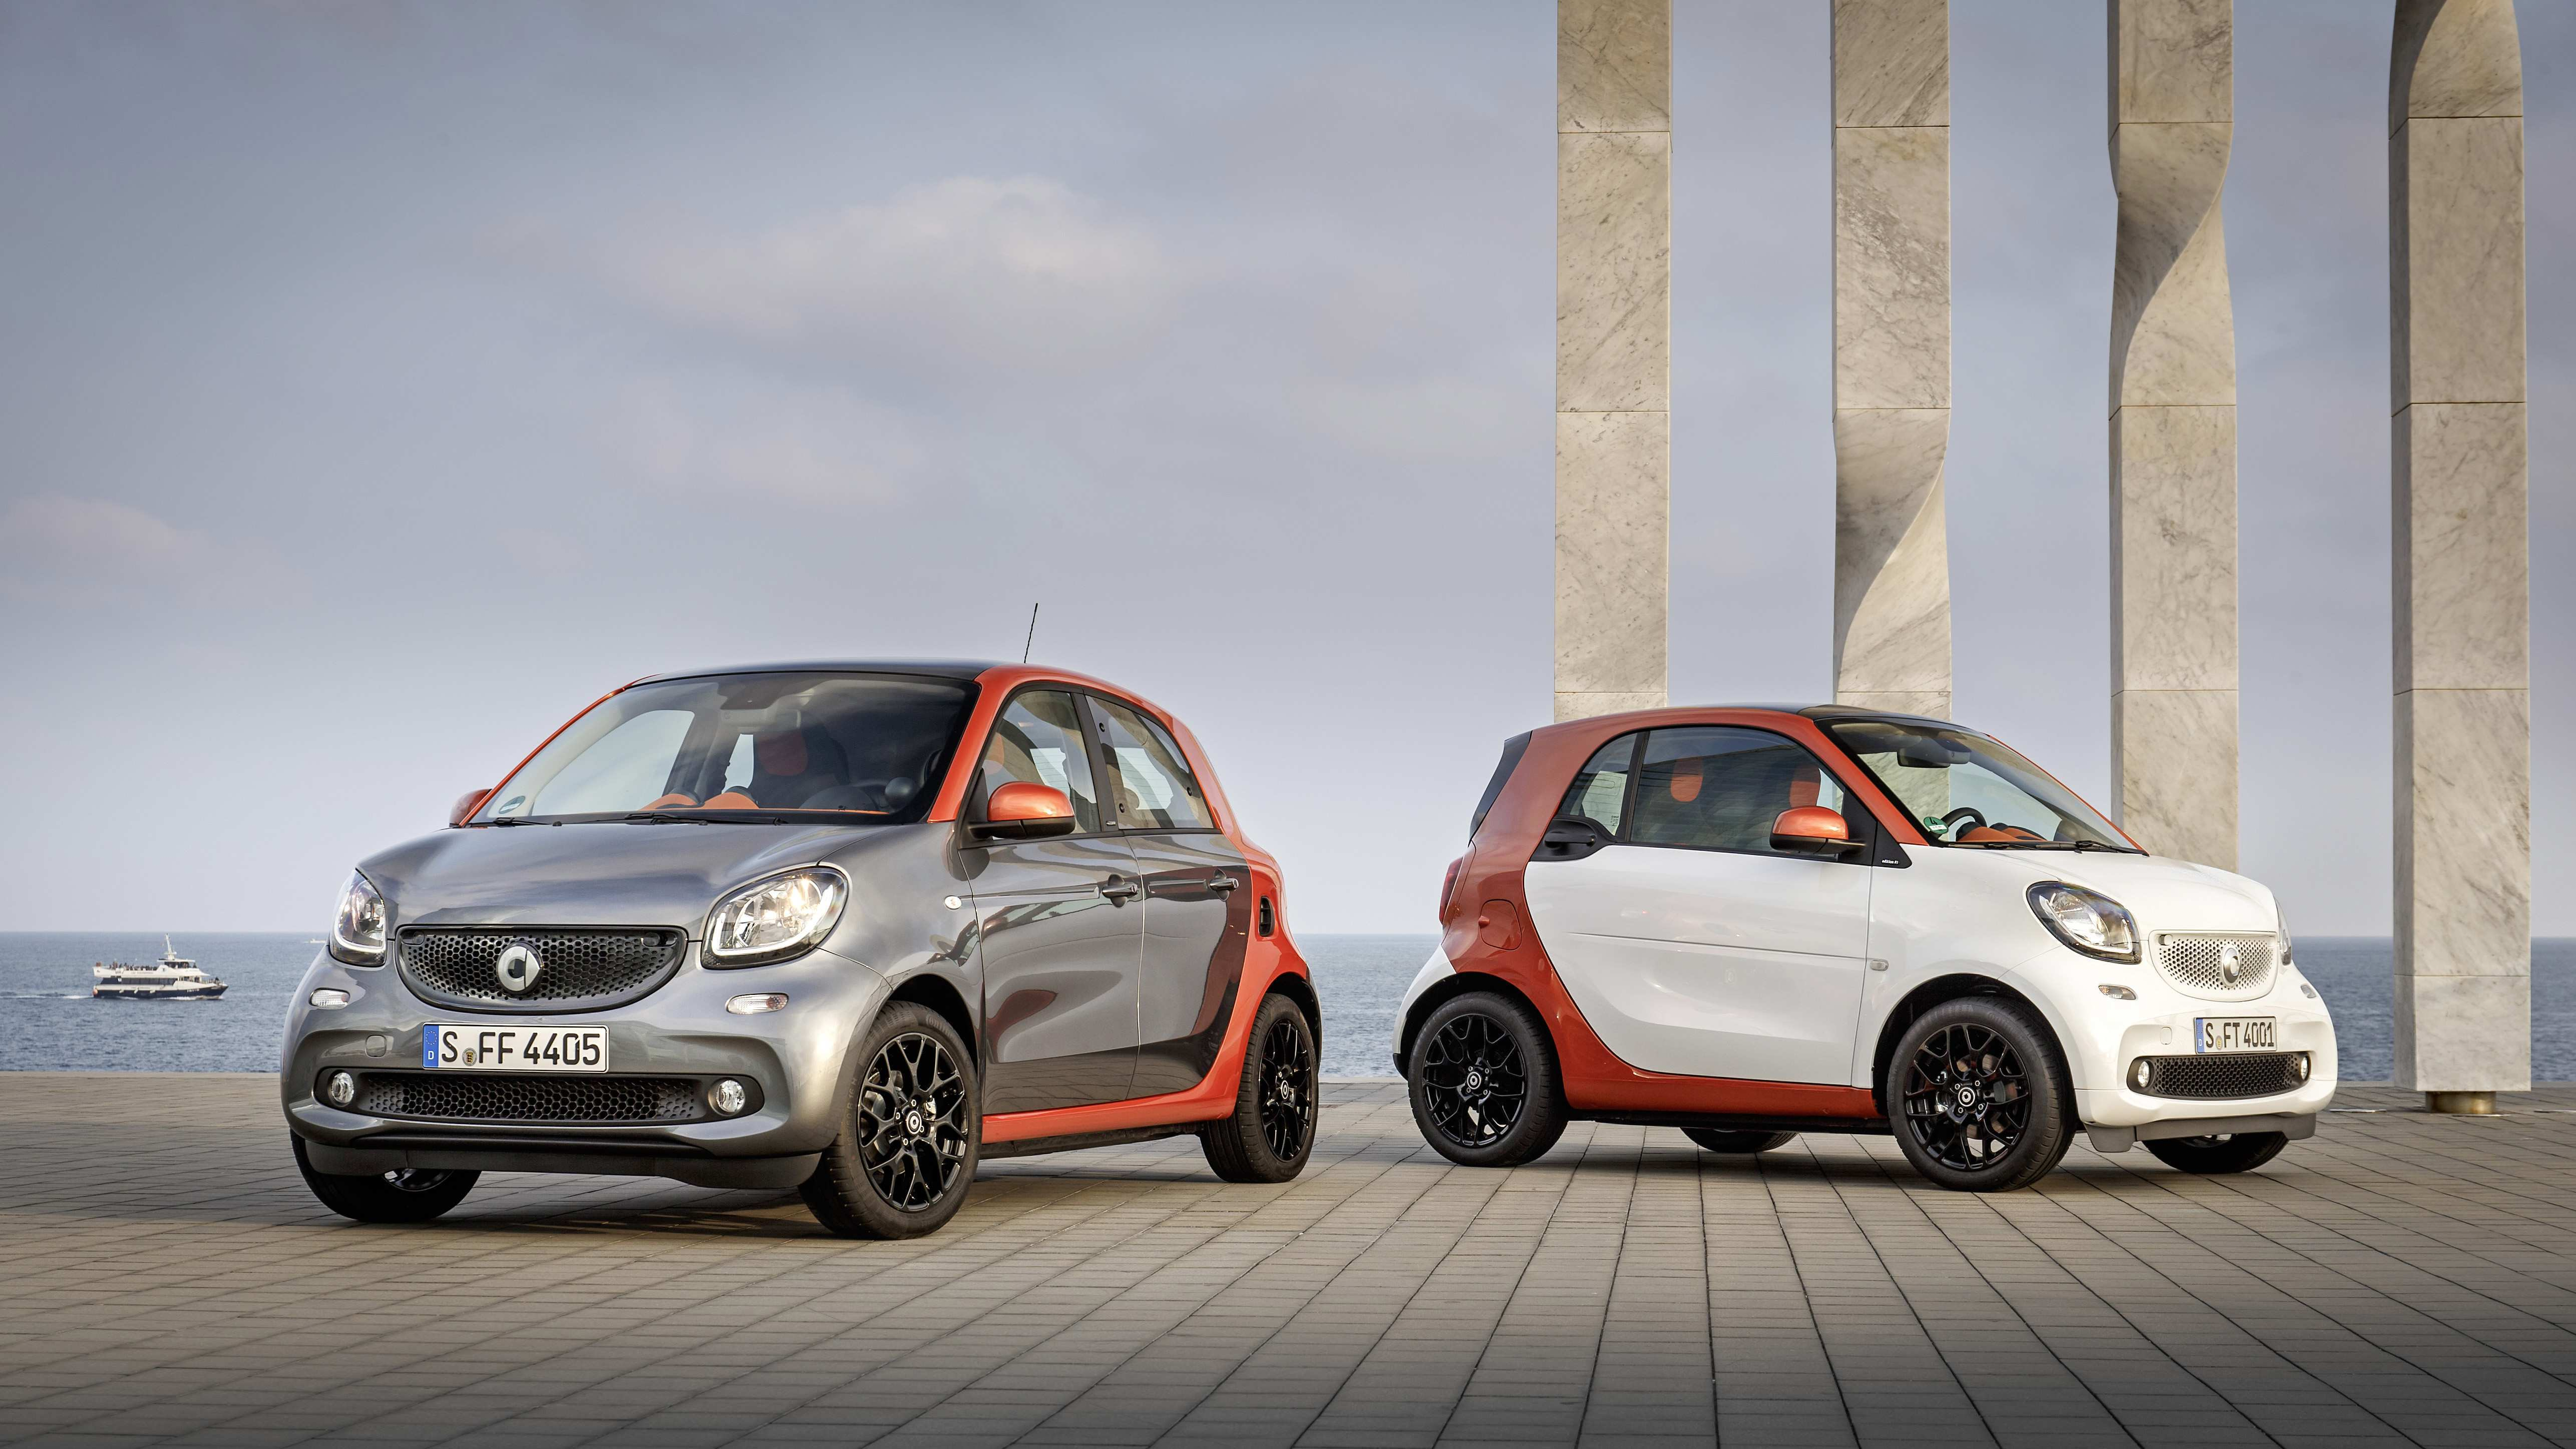 53 The Best 2020 Smart Fortwo Wallpaper